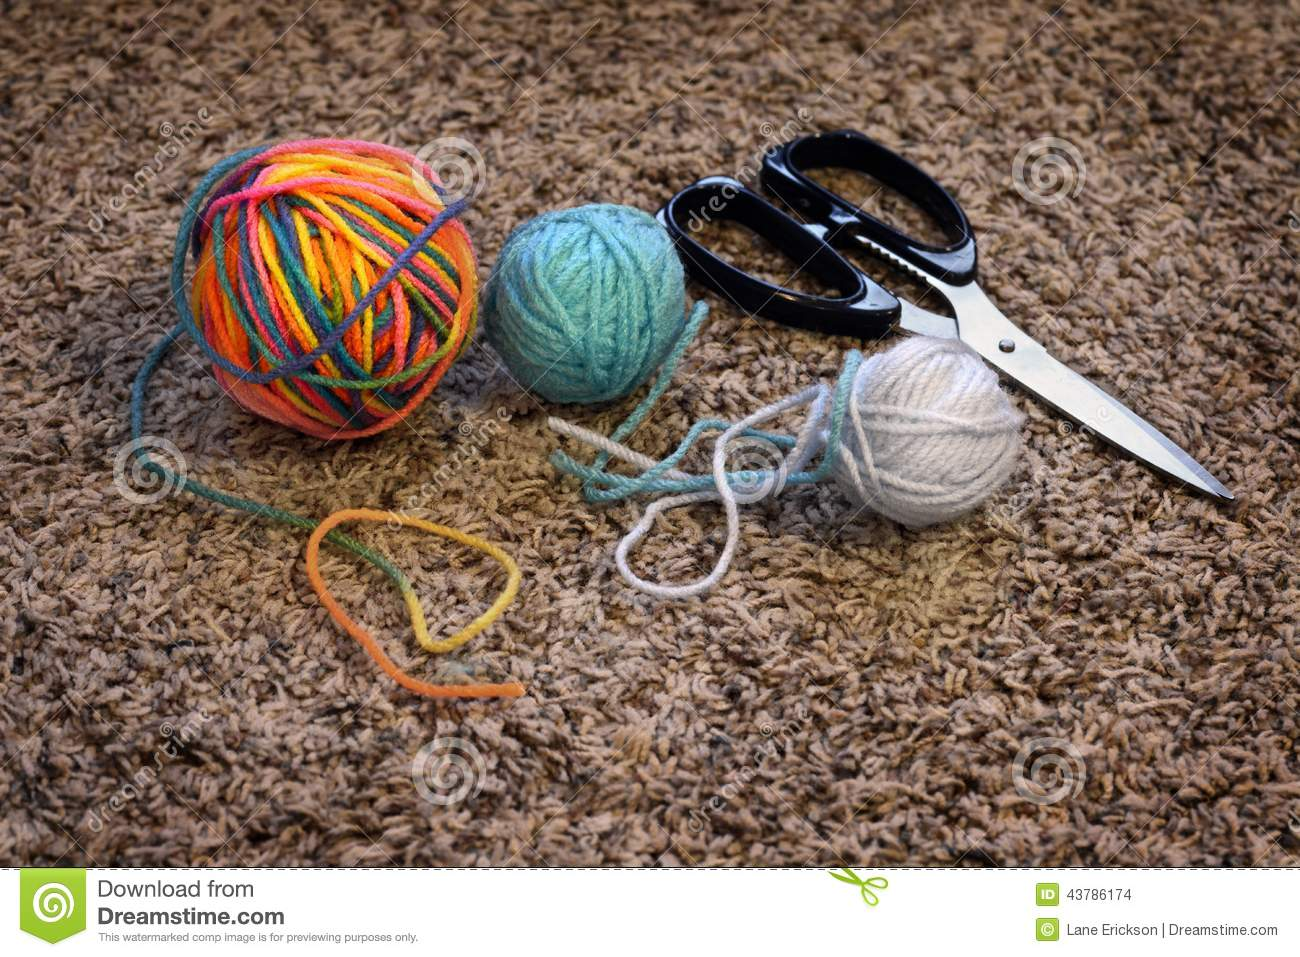 Balls of Yarn and Scissors for Crafts